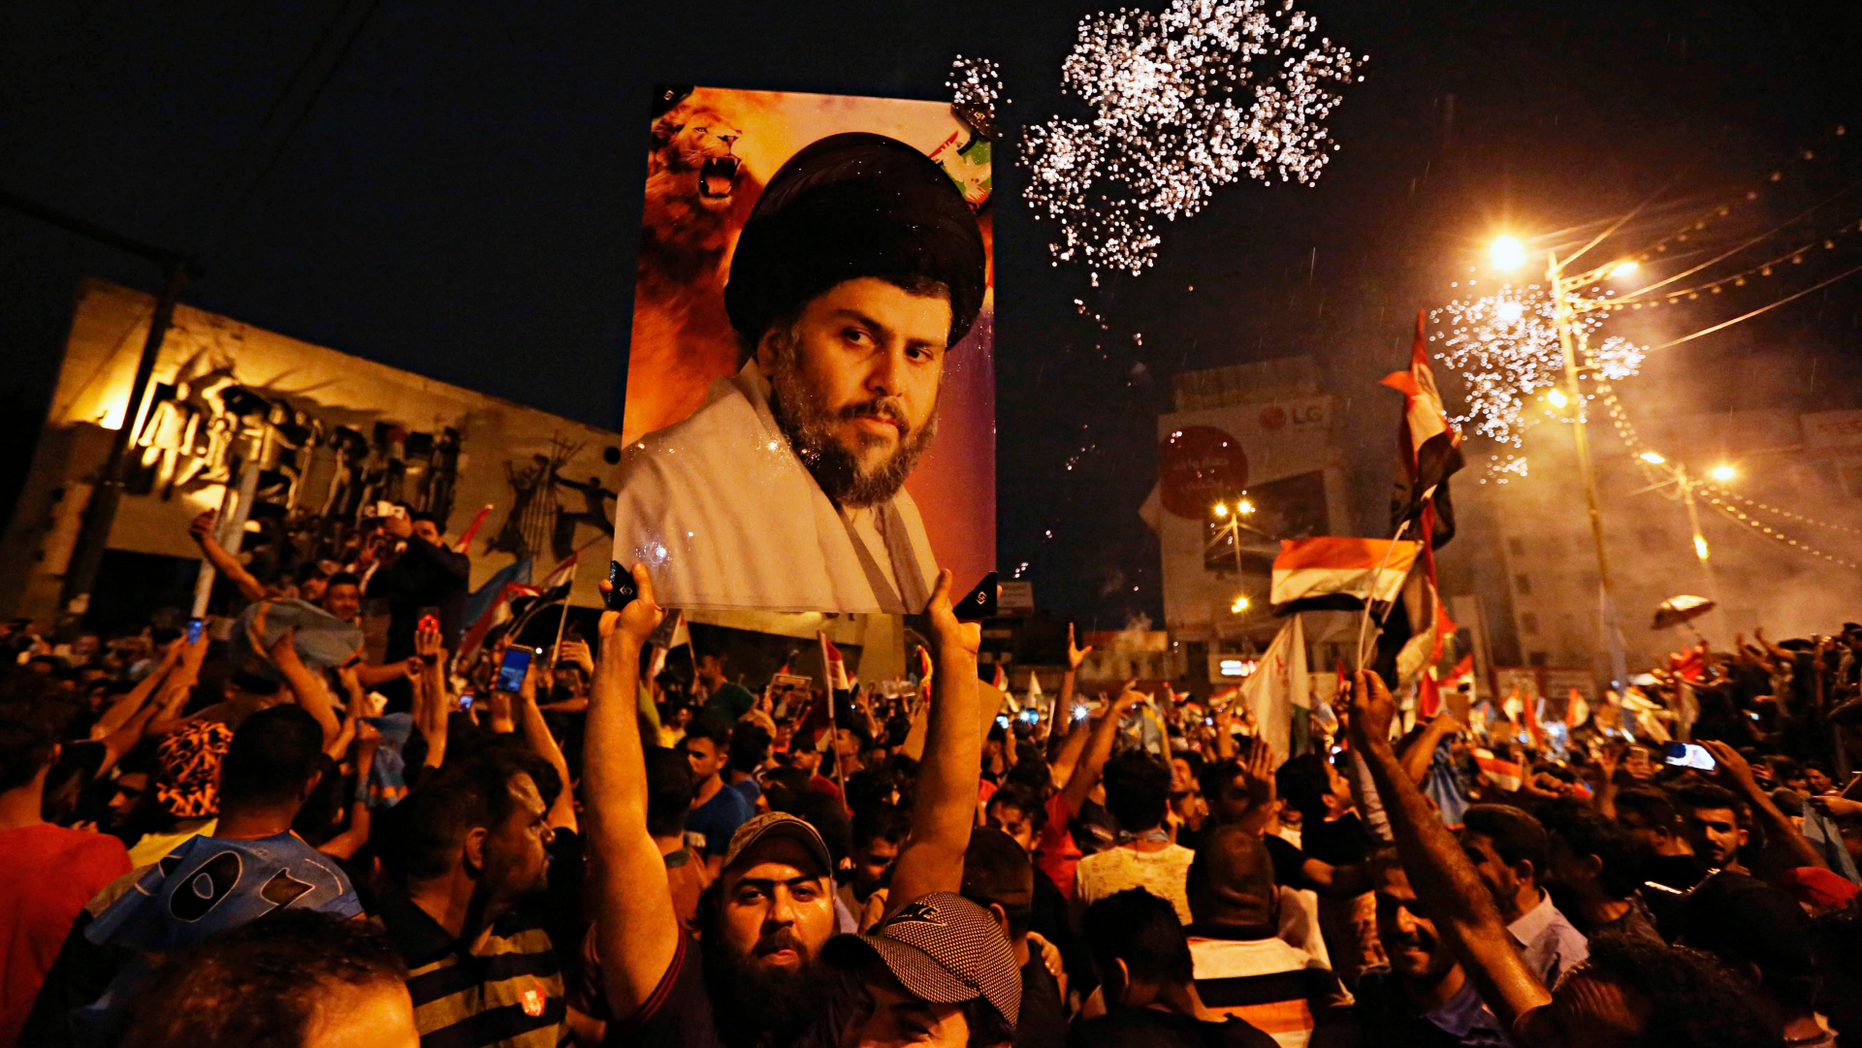 """Shiite cleric Muqtada al-Sadr, whose coalition won the largest number of seats in Iraq's parliamentary elections, says the next government will be """"inclusive."""""""